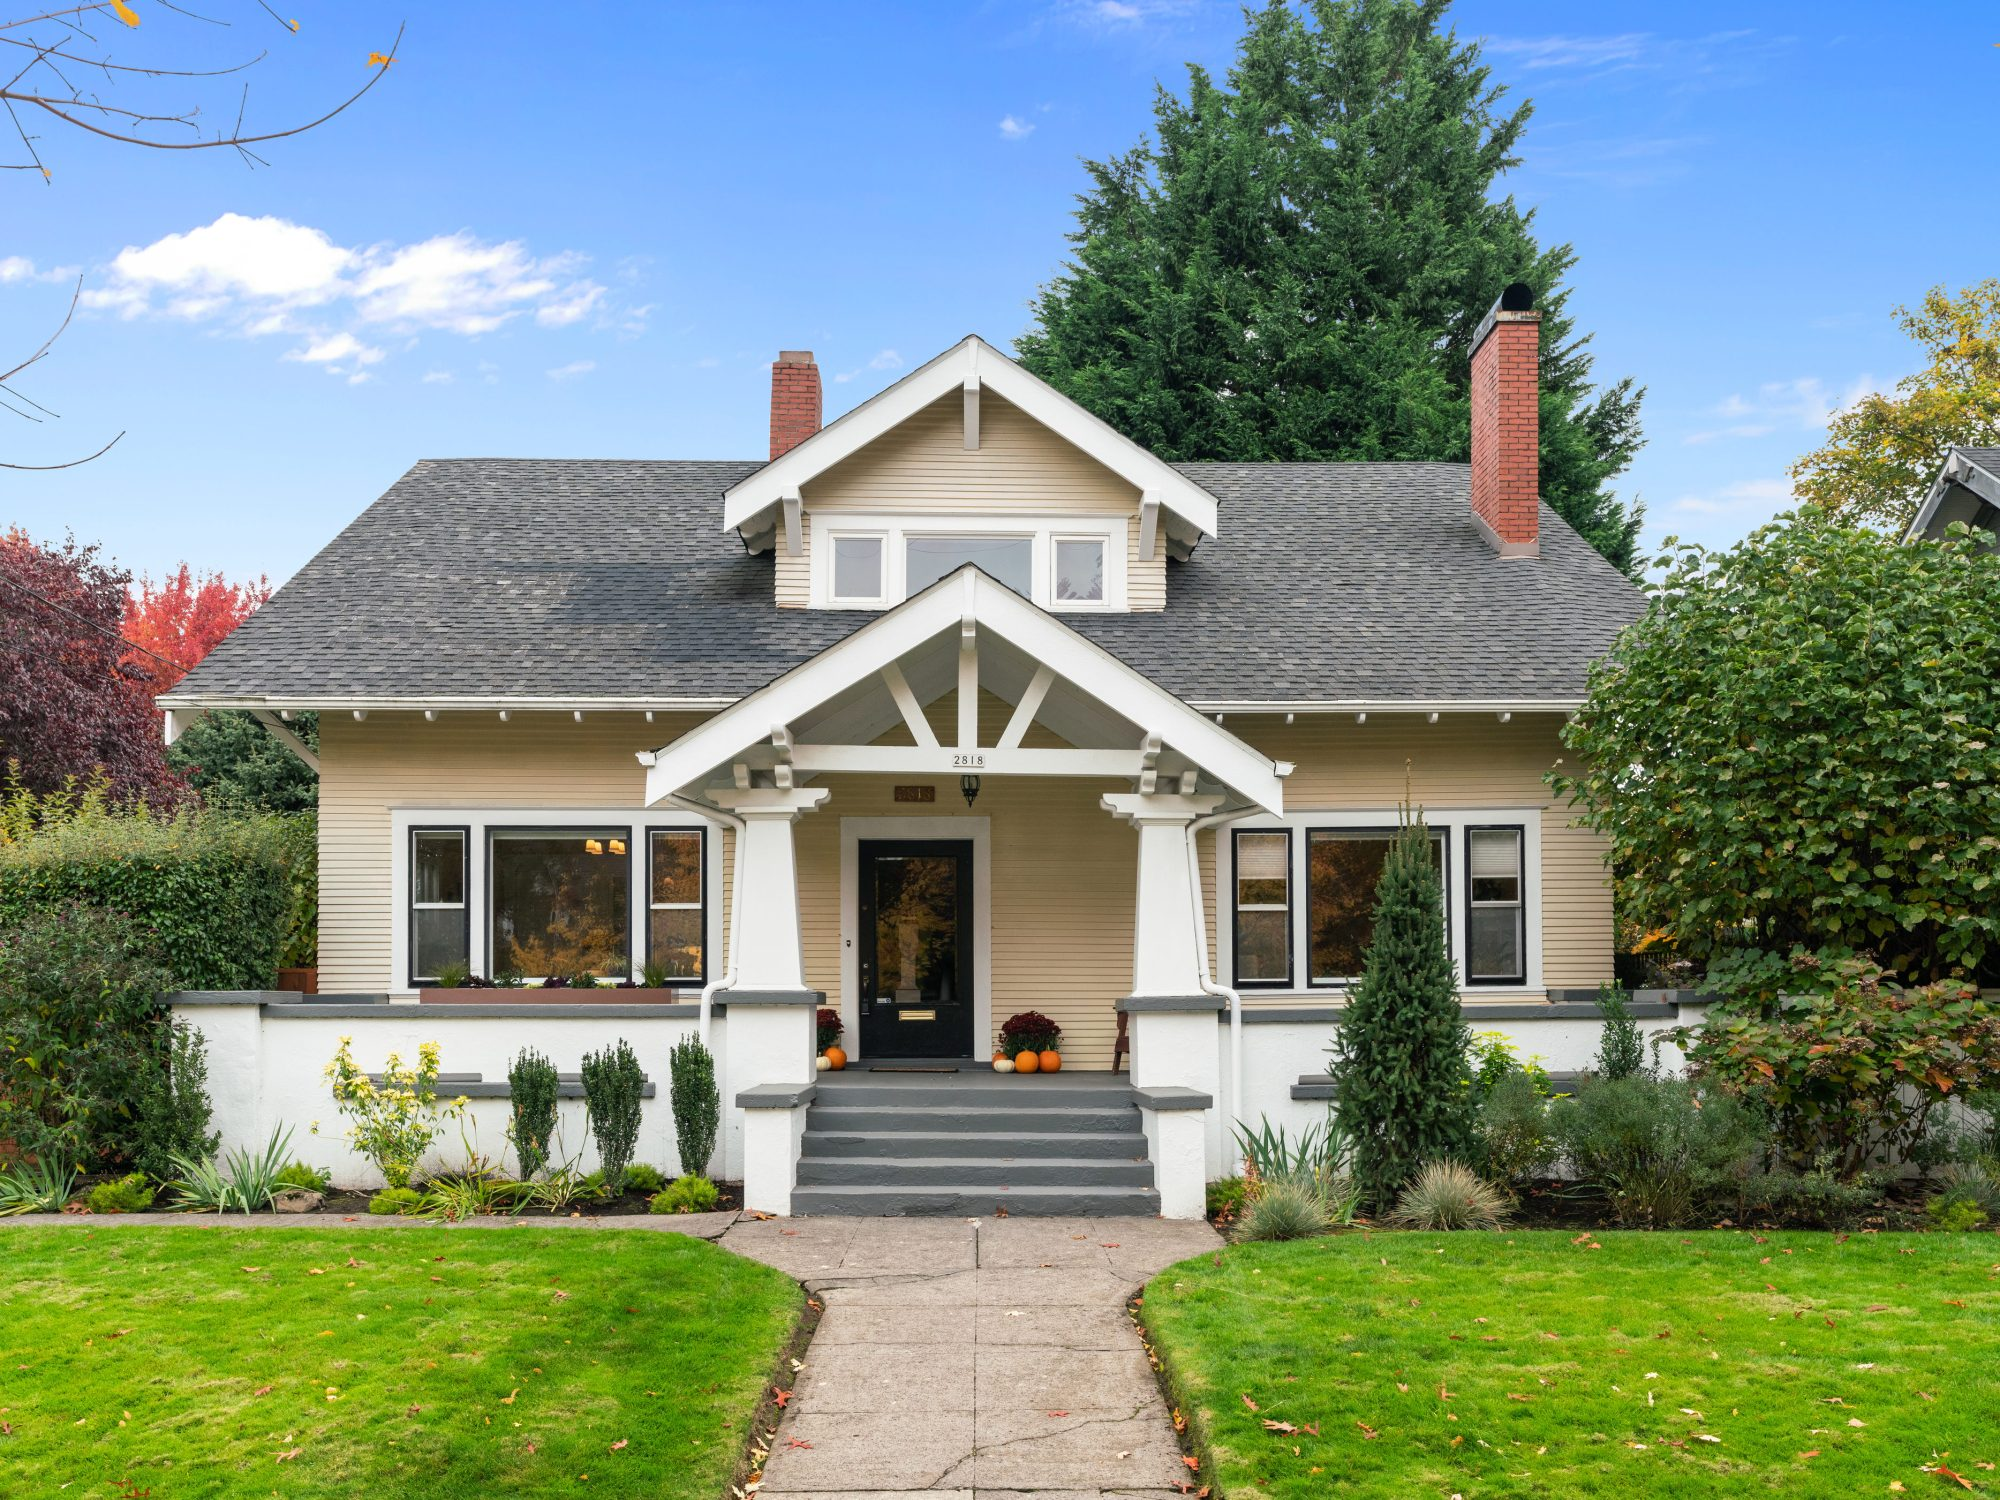 Irvington Craftsman home exterior in Northeast Portland with large porch and bright green grass